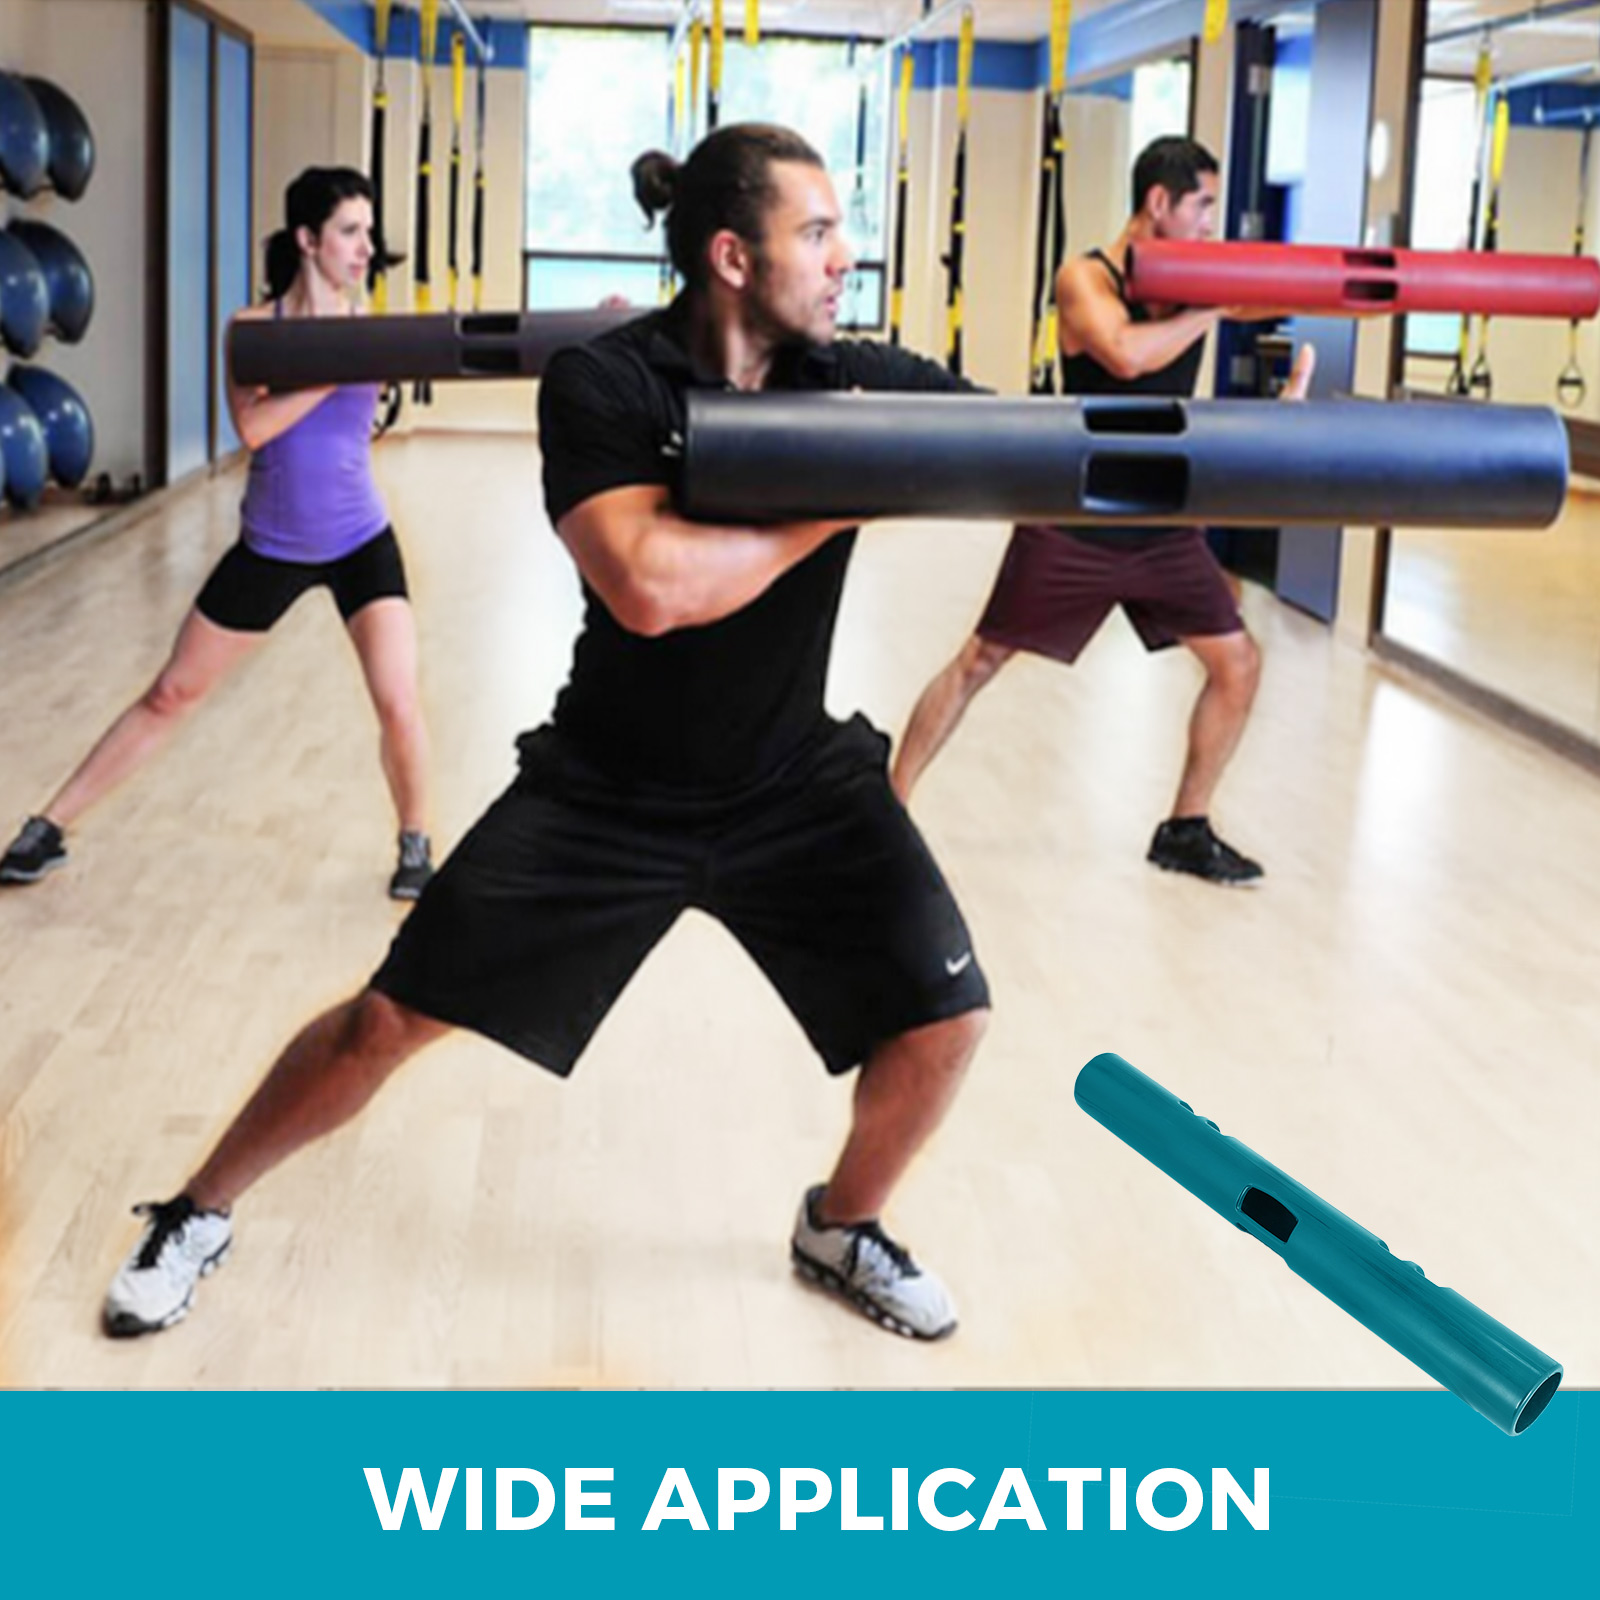 Vipr-Fitpro-Fitness-Tube-Loaded-Movement-Training-weightlifting-4-6-8-10-12-Kg thumbnail 187